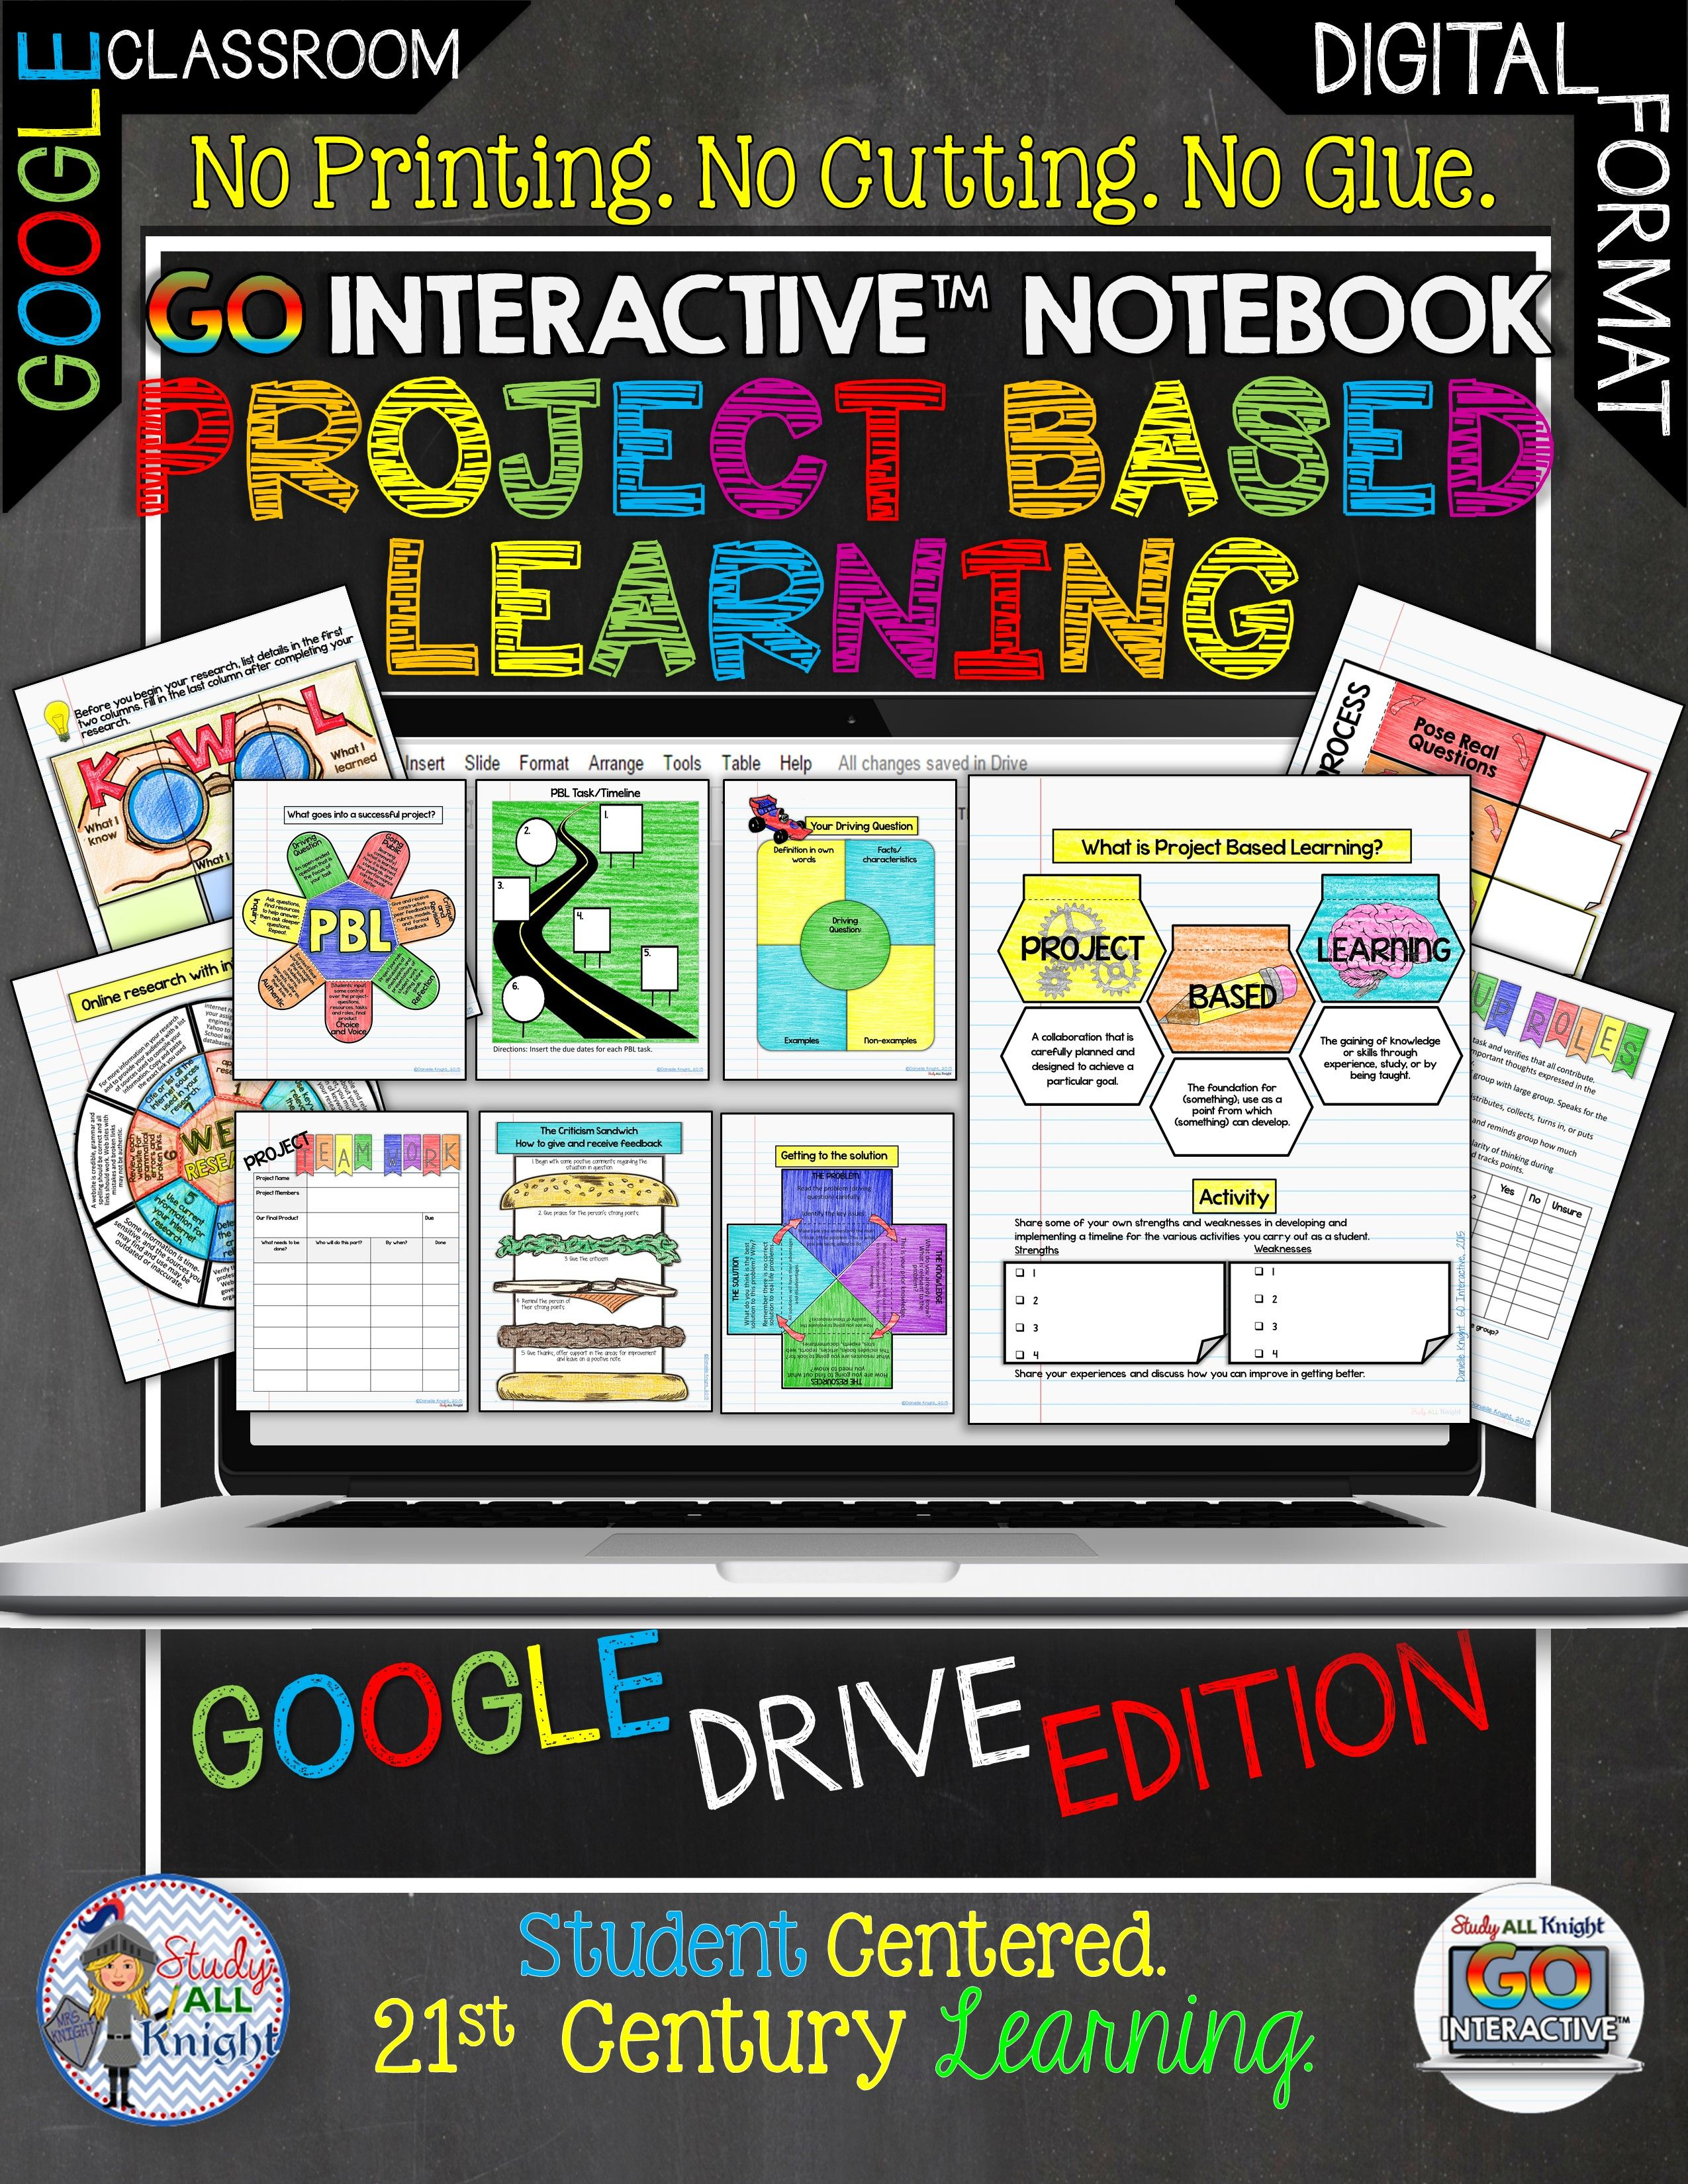 GO Interactive Notebook Project Based Learning Google Edition